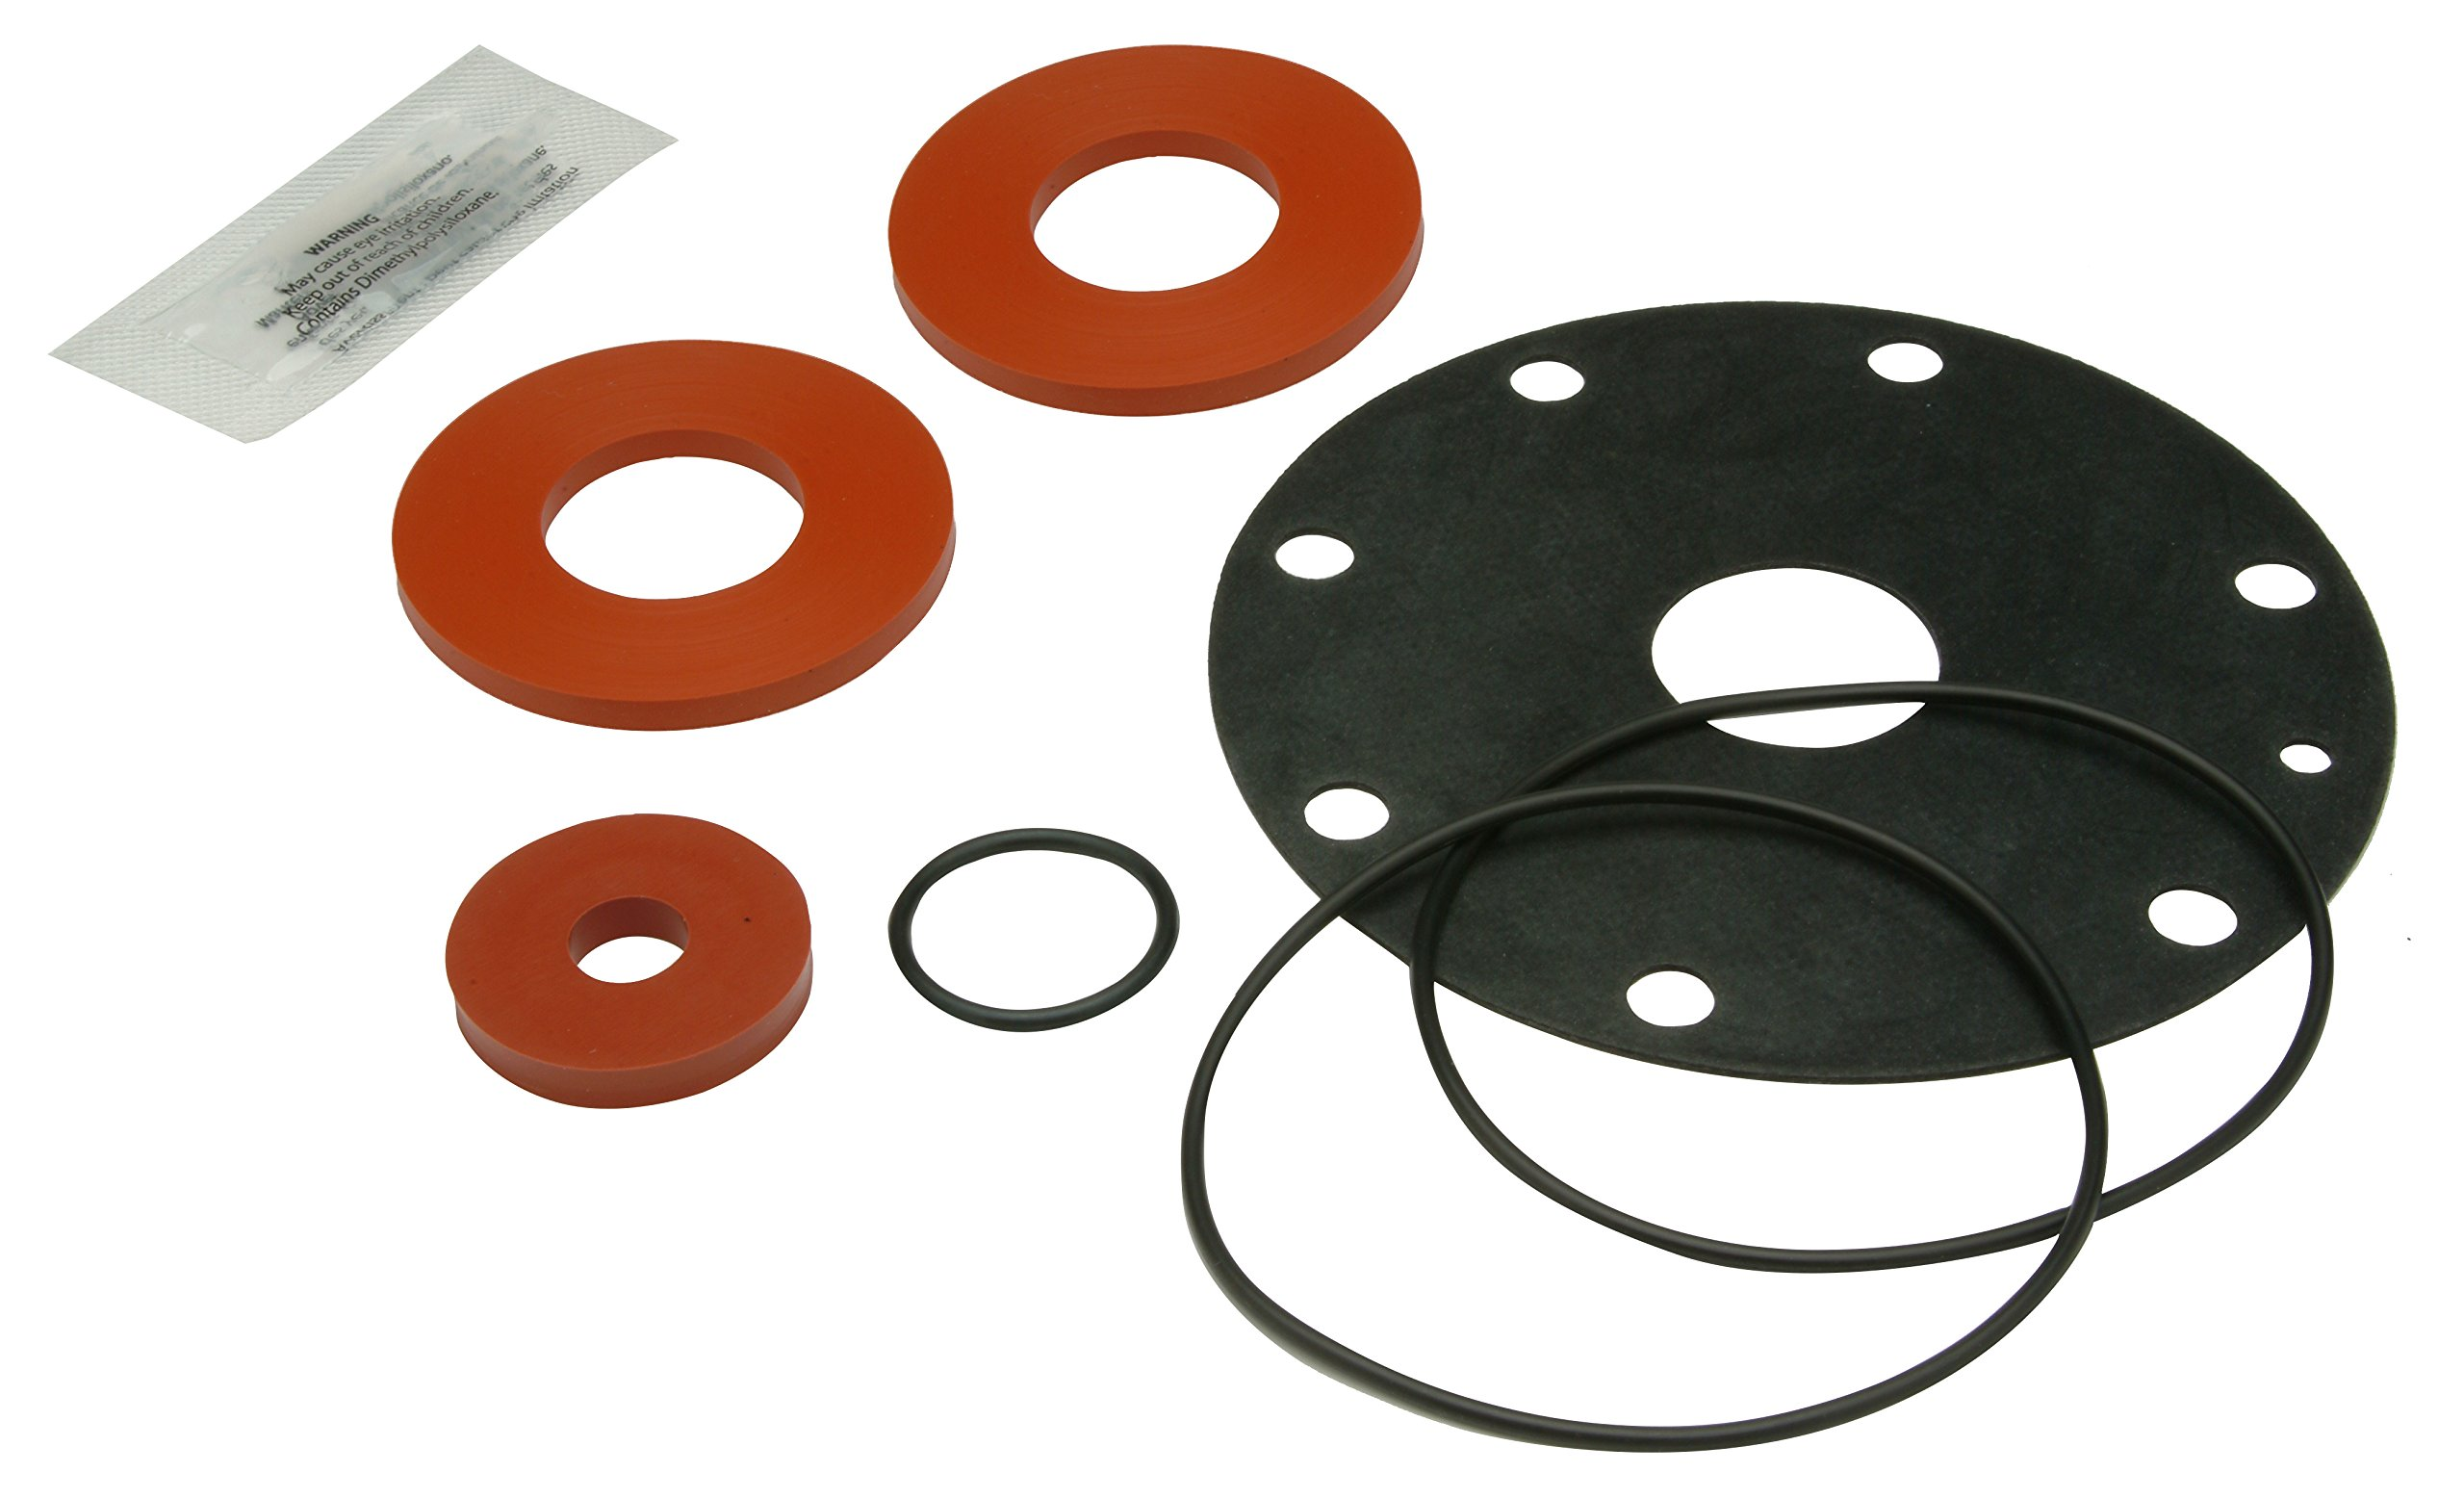 Zurn RK114-975XLR Wilkins Complete Rubber Repair Kit for Models 975XL/975XL2, 1.25'' to 2'' Sizes and for Backflow Preventer by Zurn (Image #1)